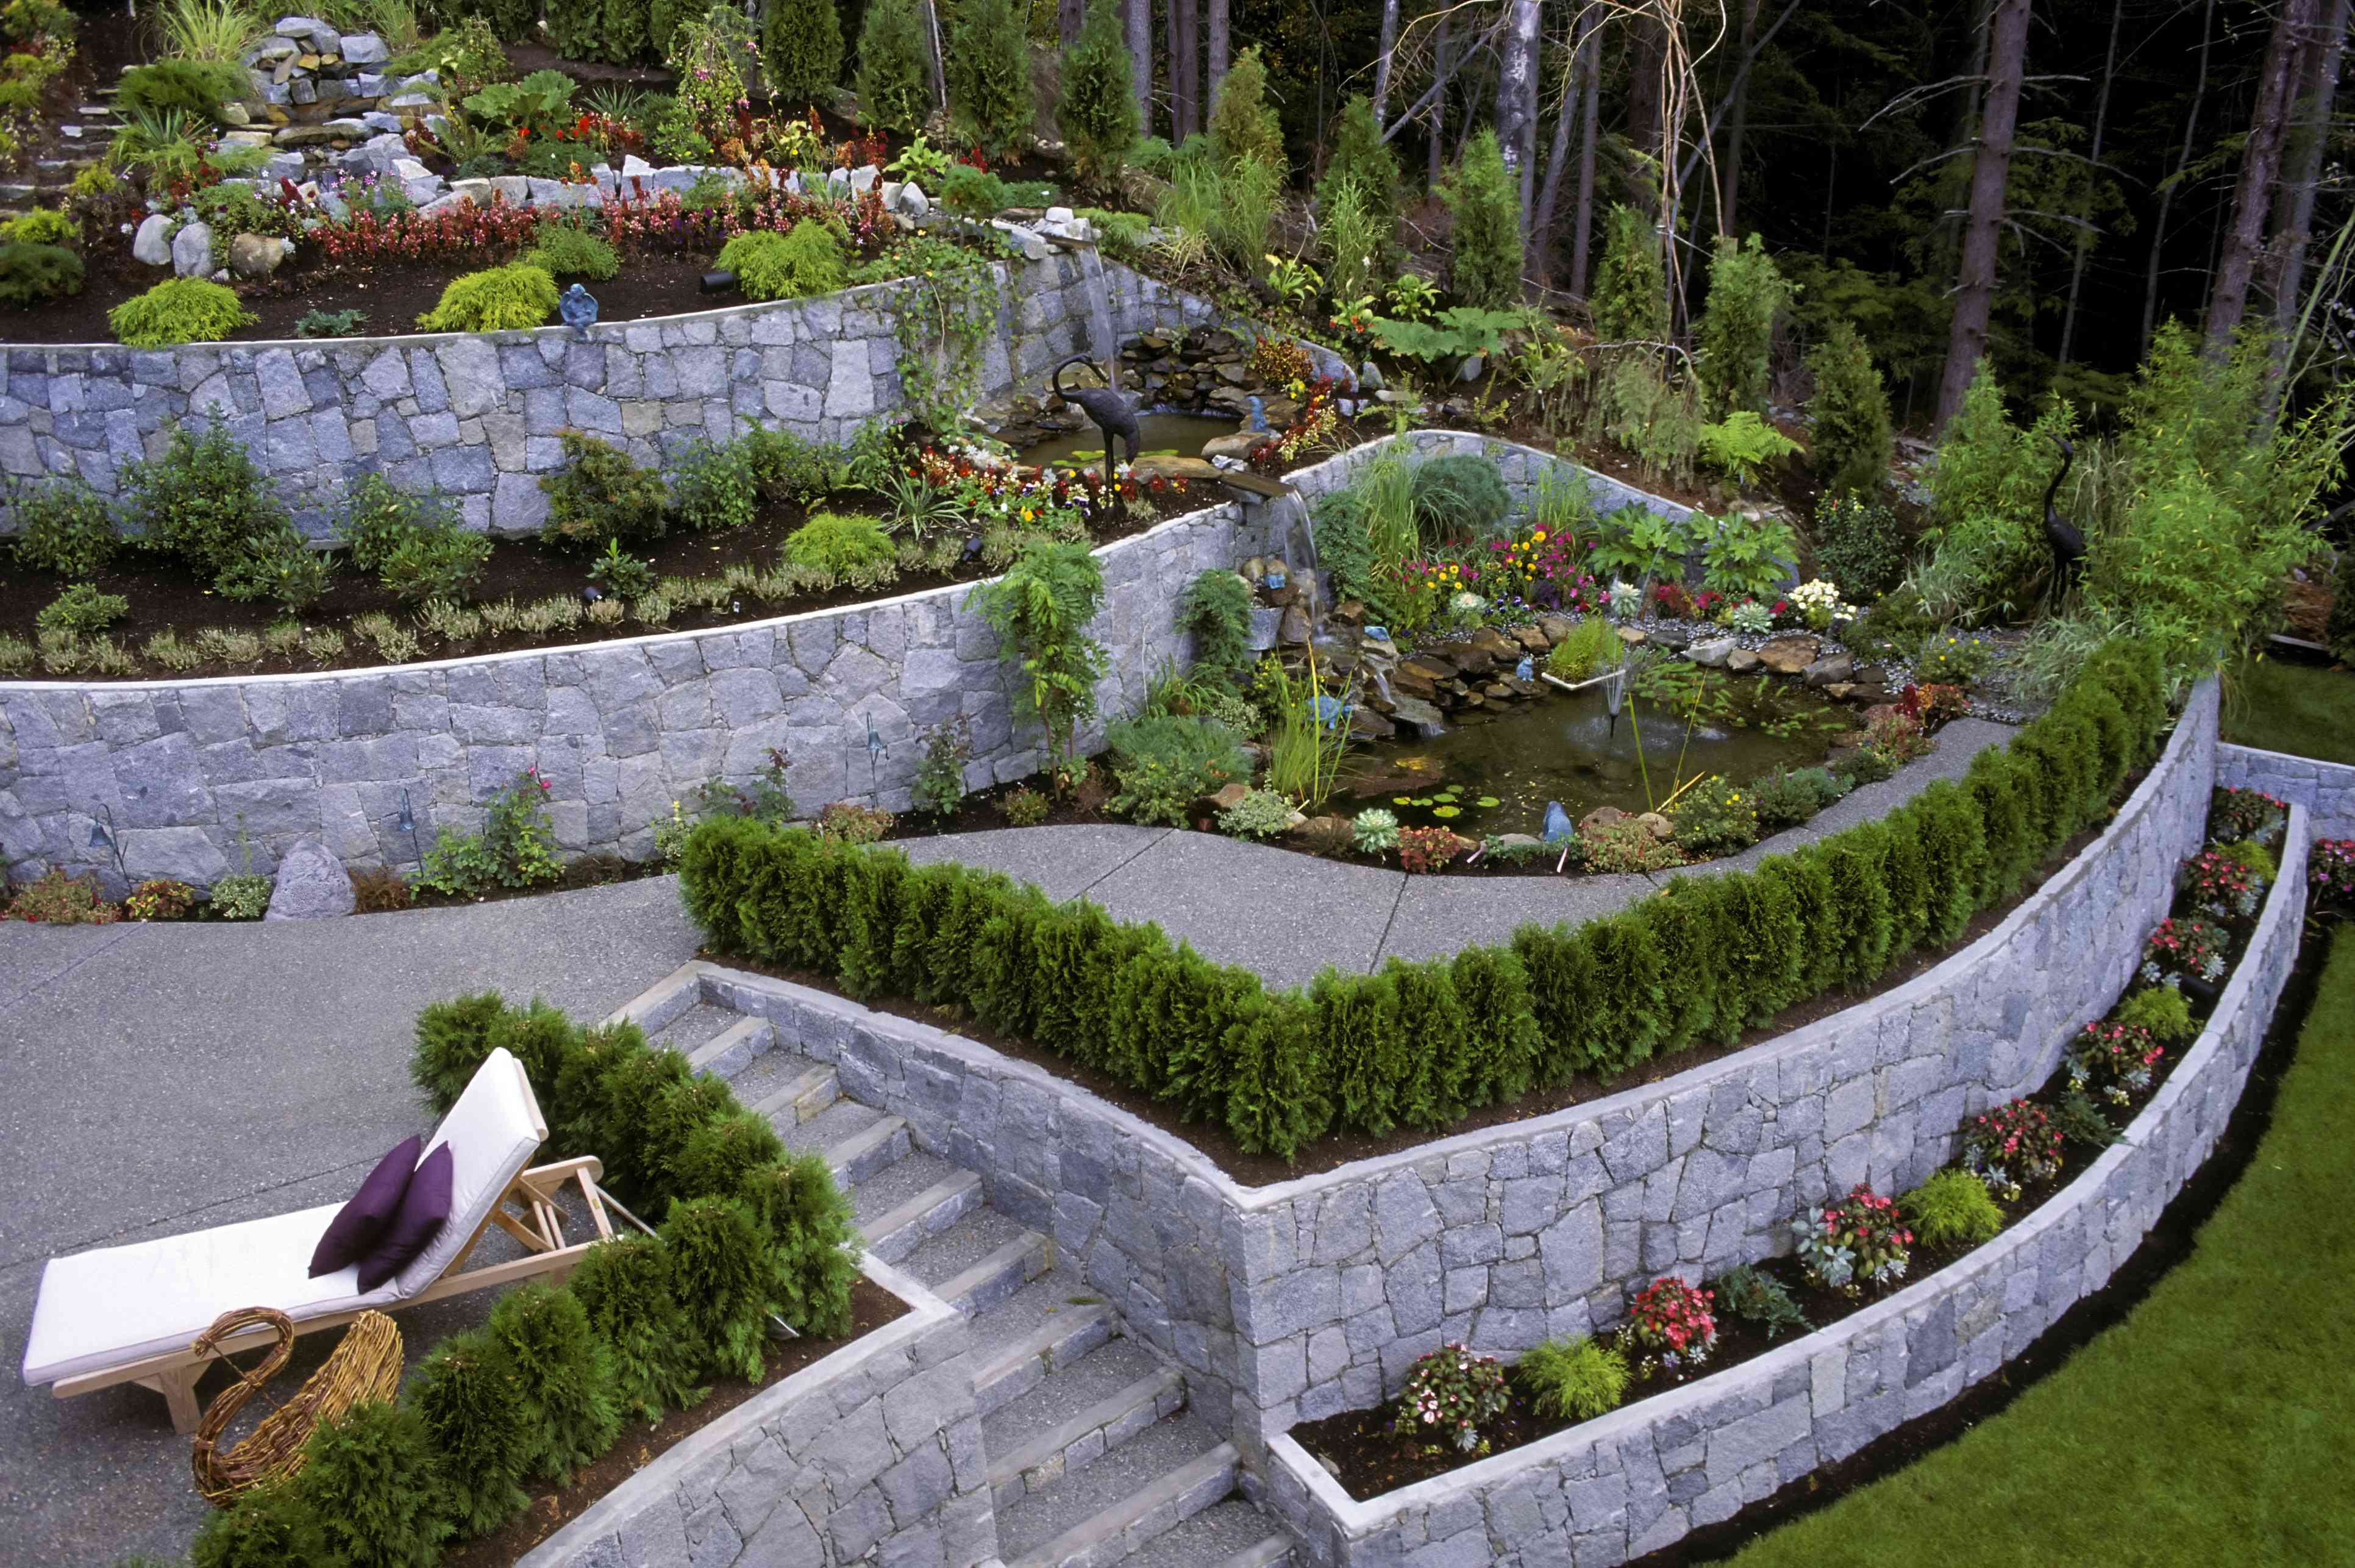 Multi-terraced garden with raised flower beds